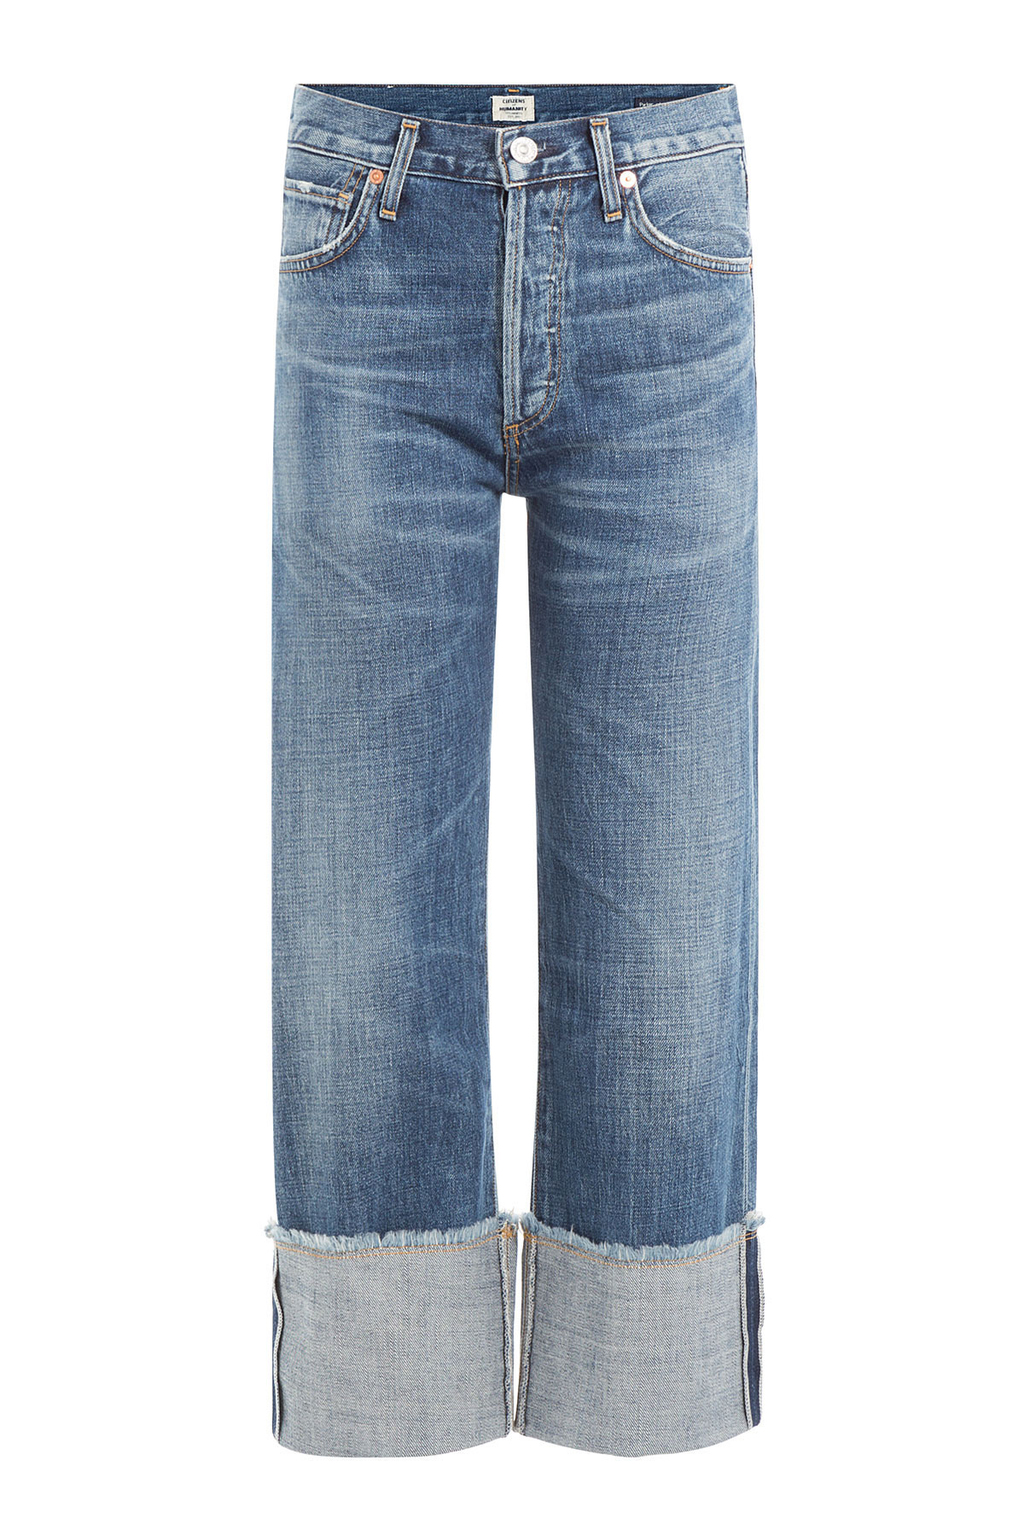 Cuffed Cropped Jeans - style: straight leg; length: standard; pattern: plain; pocket detail: traditional 5 pocket; waist: mid/regular rise; predominant colour: denim; occasions: casual; fibres: cotton - stretch; jeans detail: whiskering, washed/faded; texture group: denim; pattern type: fabric; season: s/s 2016; wardrobe: basic